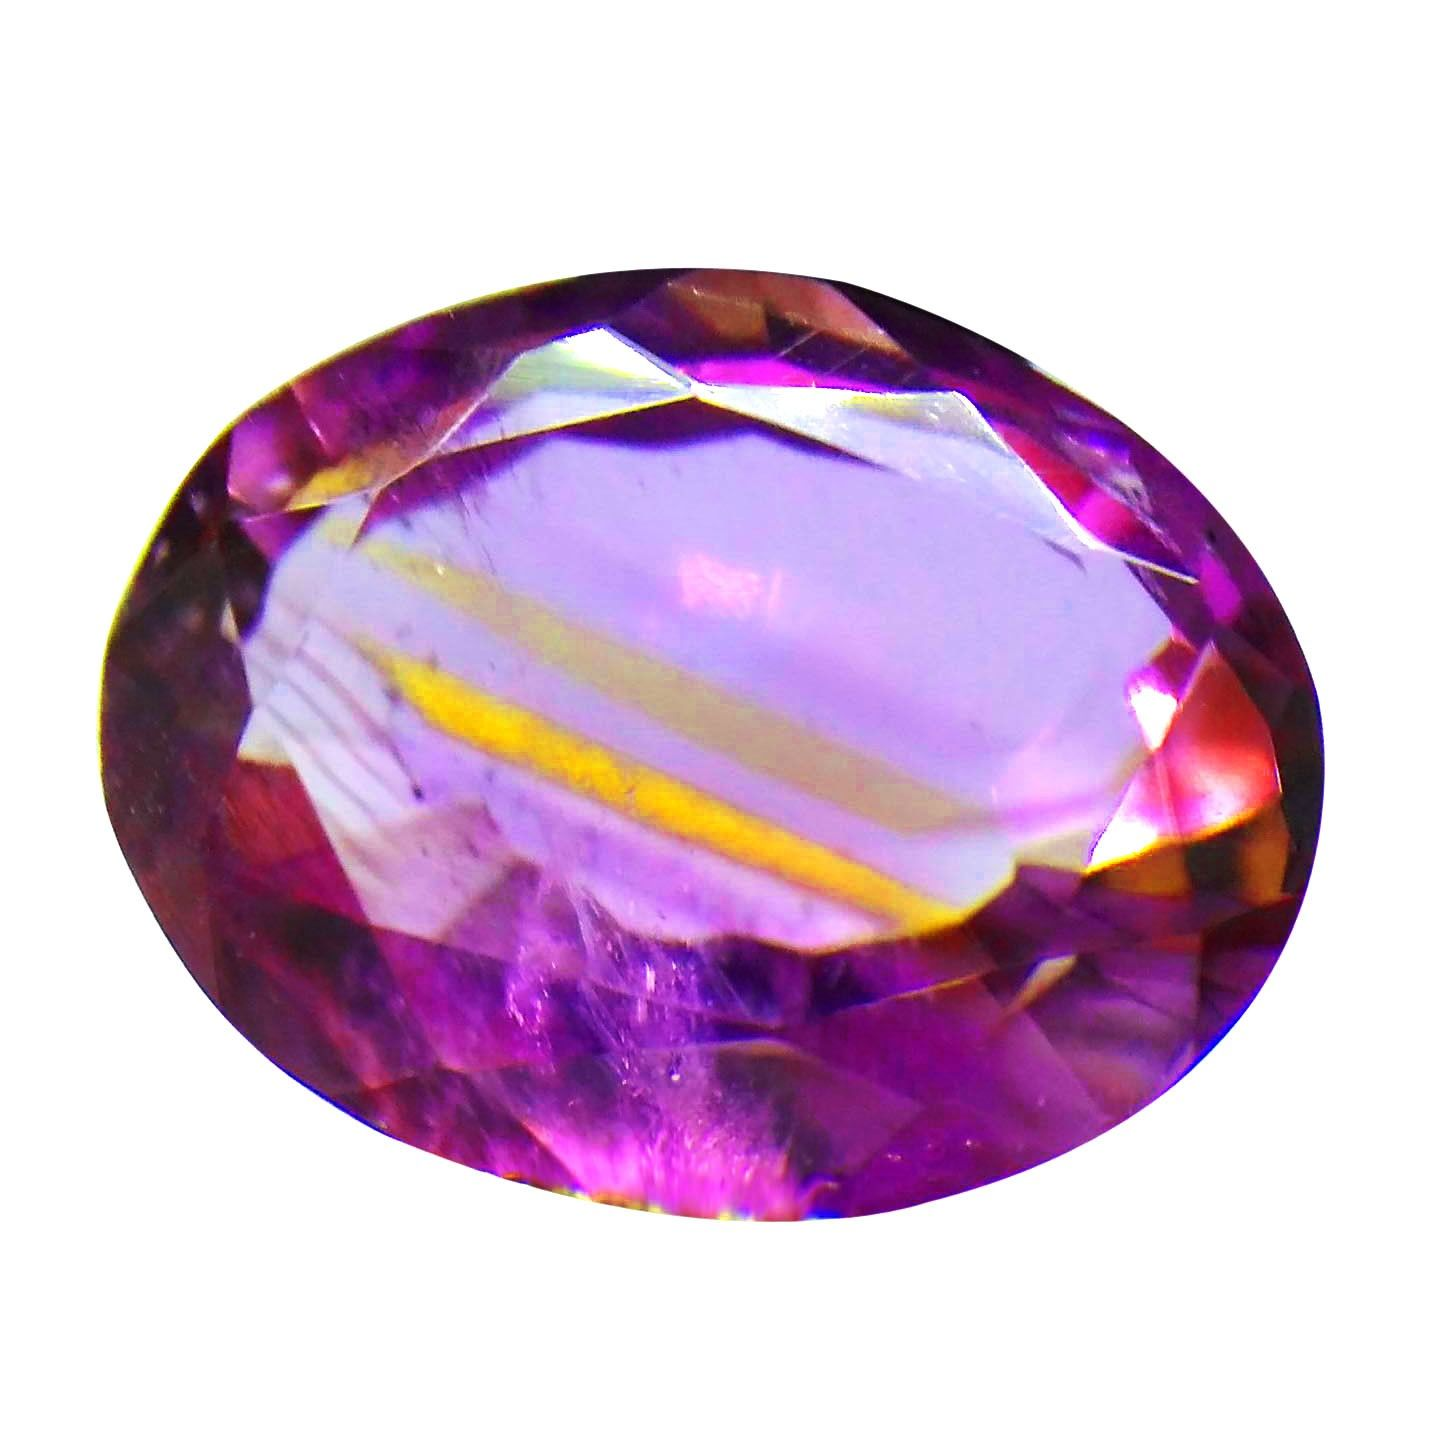 color pin deep purple amethyst gemstone untreated sparkling natural